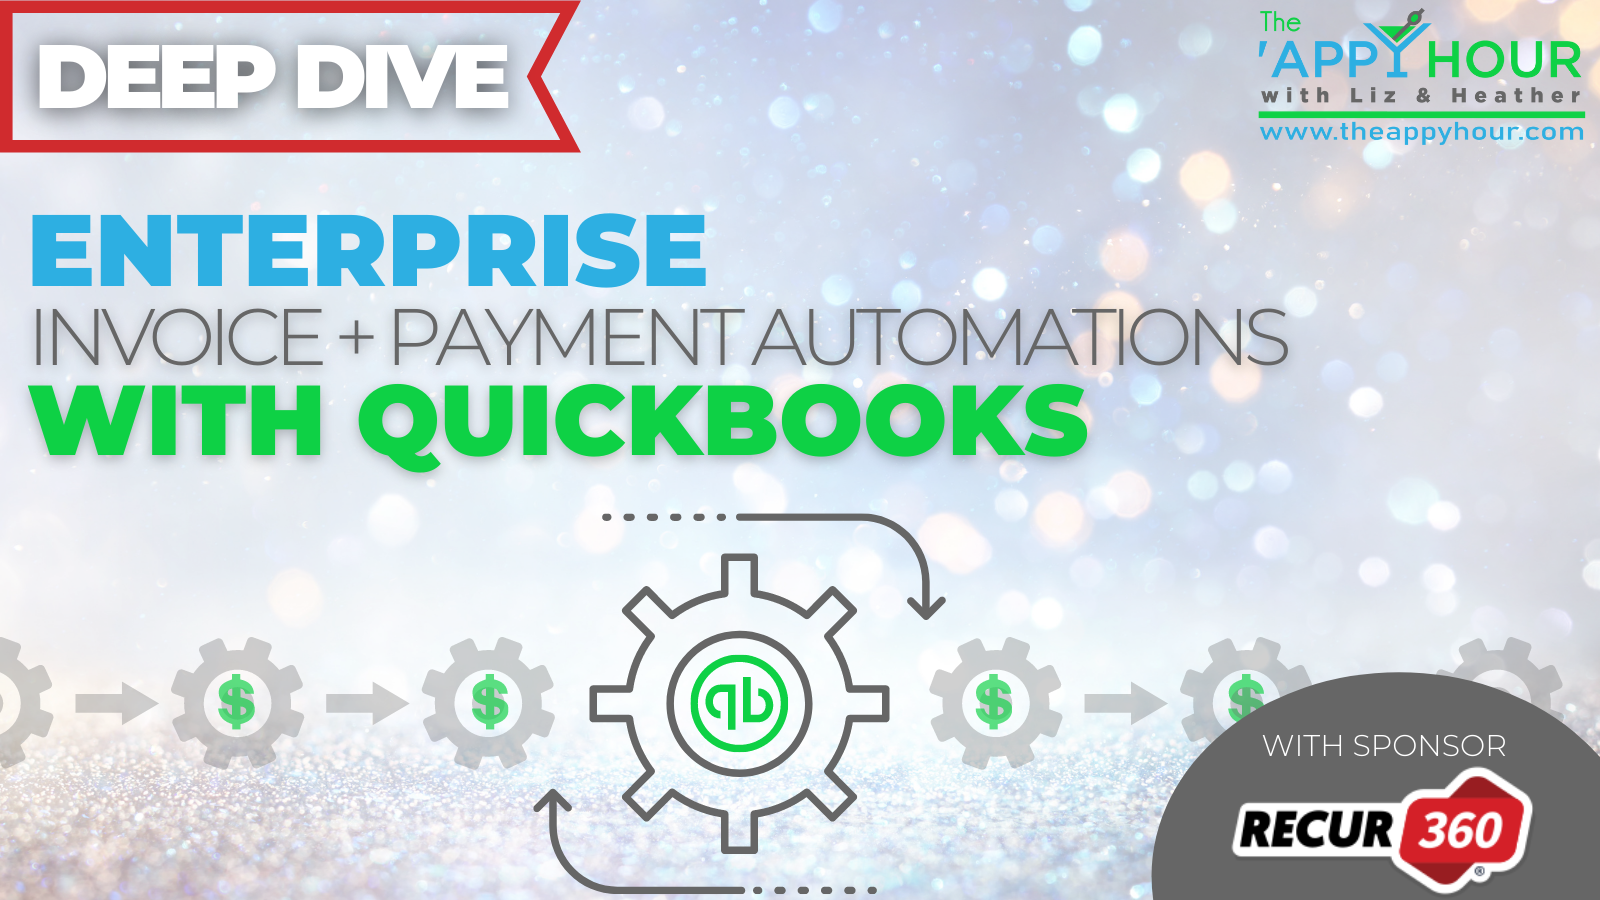 Recur360 Offers Enterprise Invoice and Payment Automations for QuickBooks